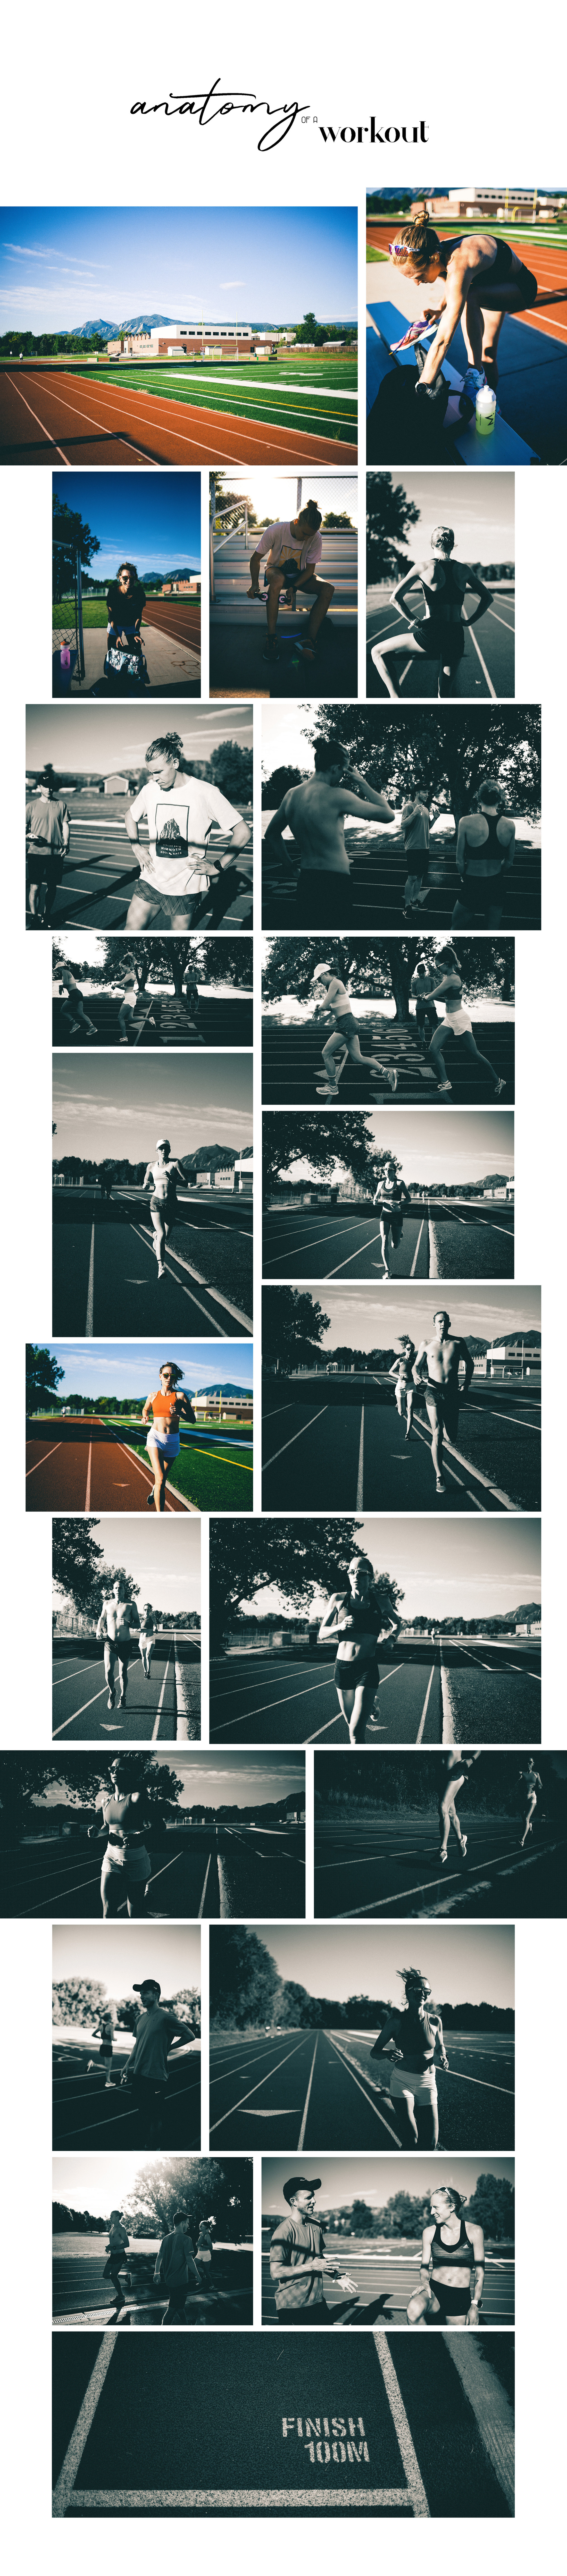 Photos were taken by Nicole Bush on August 5, 2019 at the Centennial track in Boulder, Colorado.